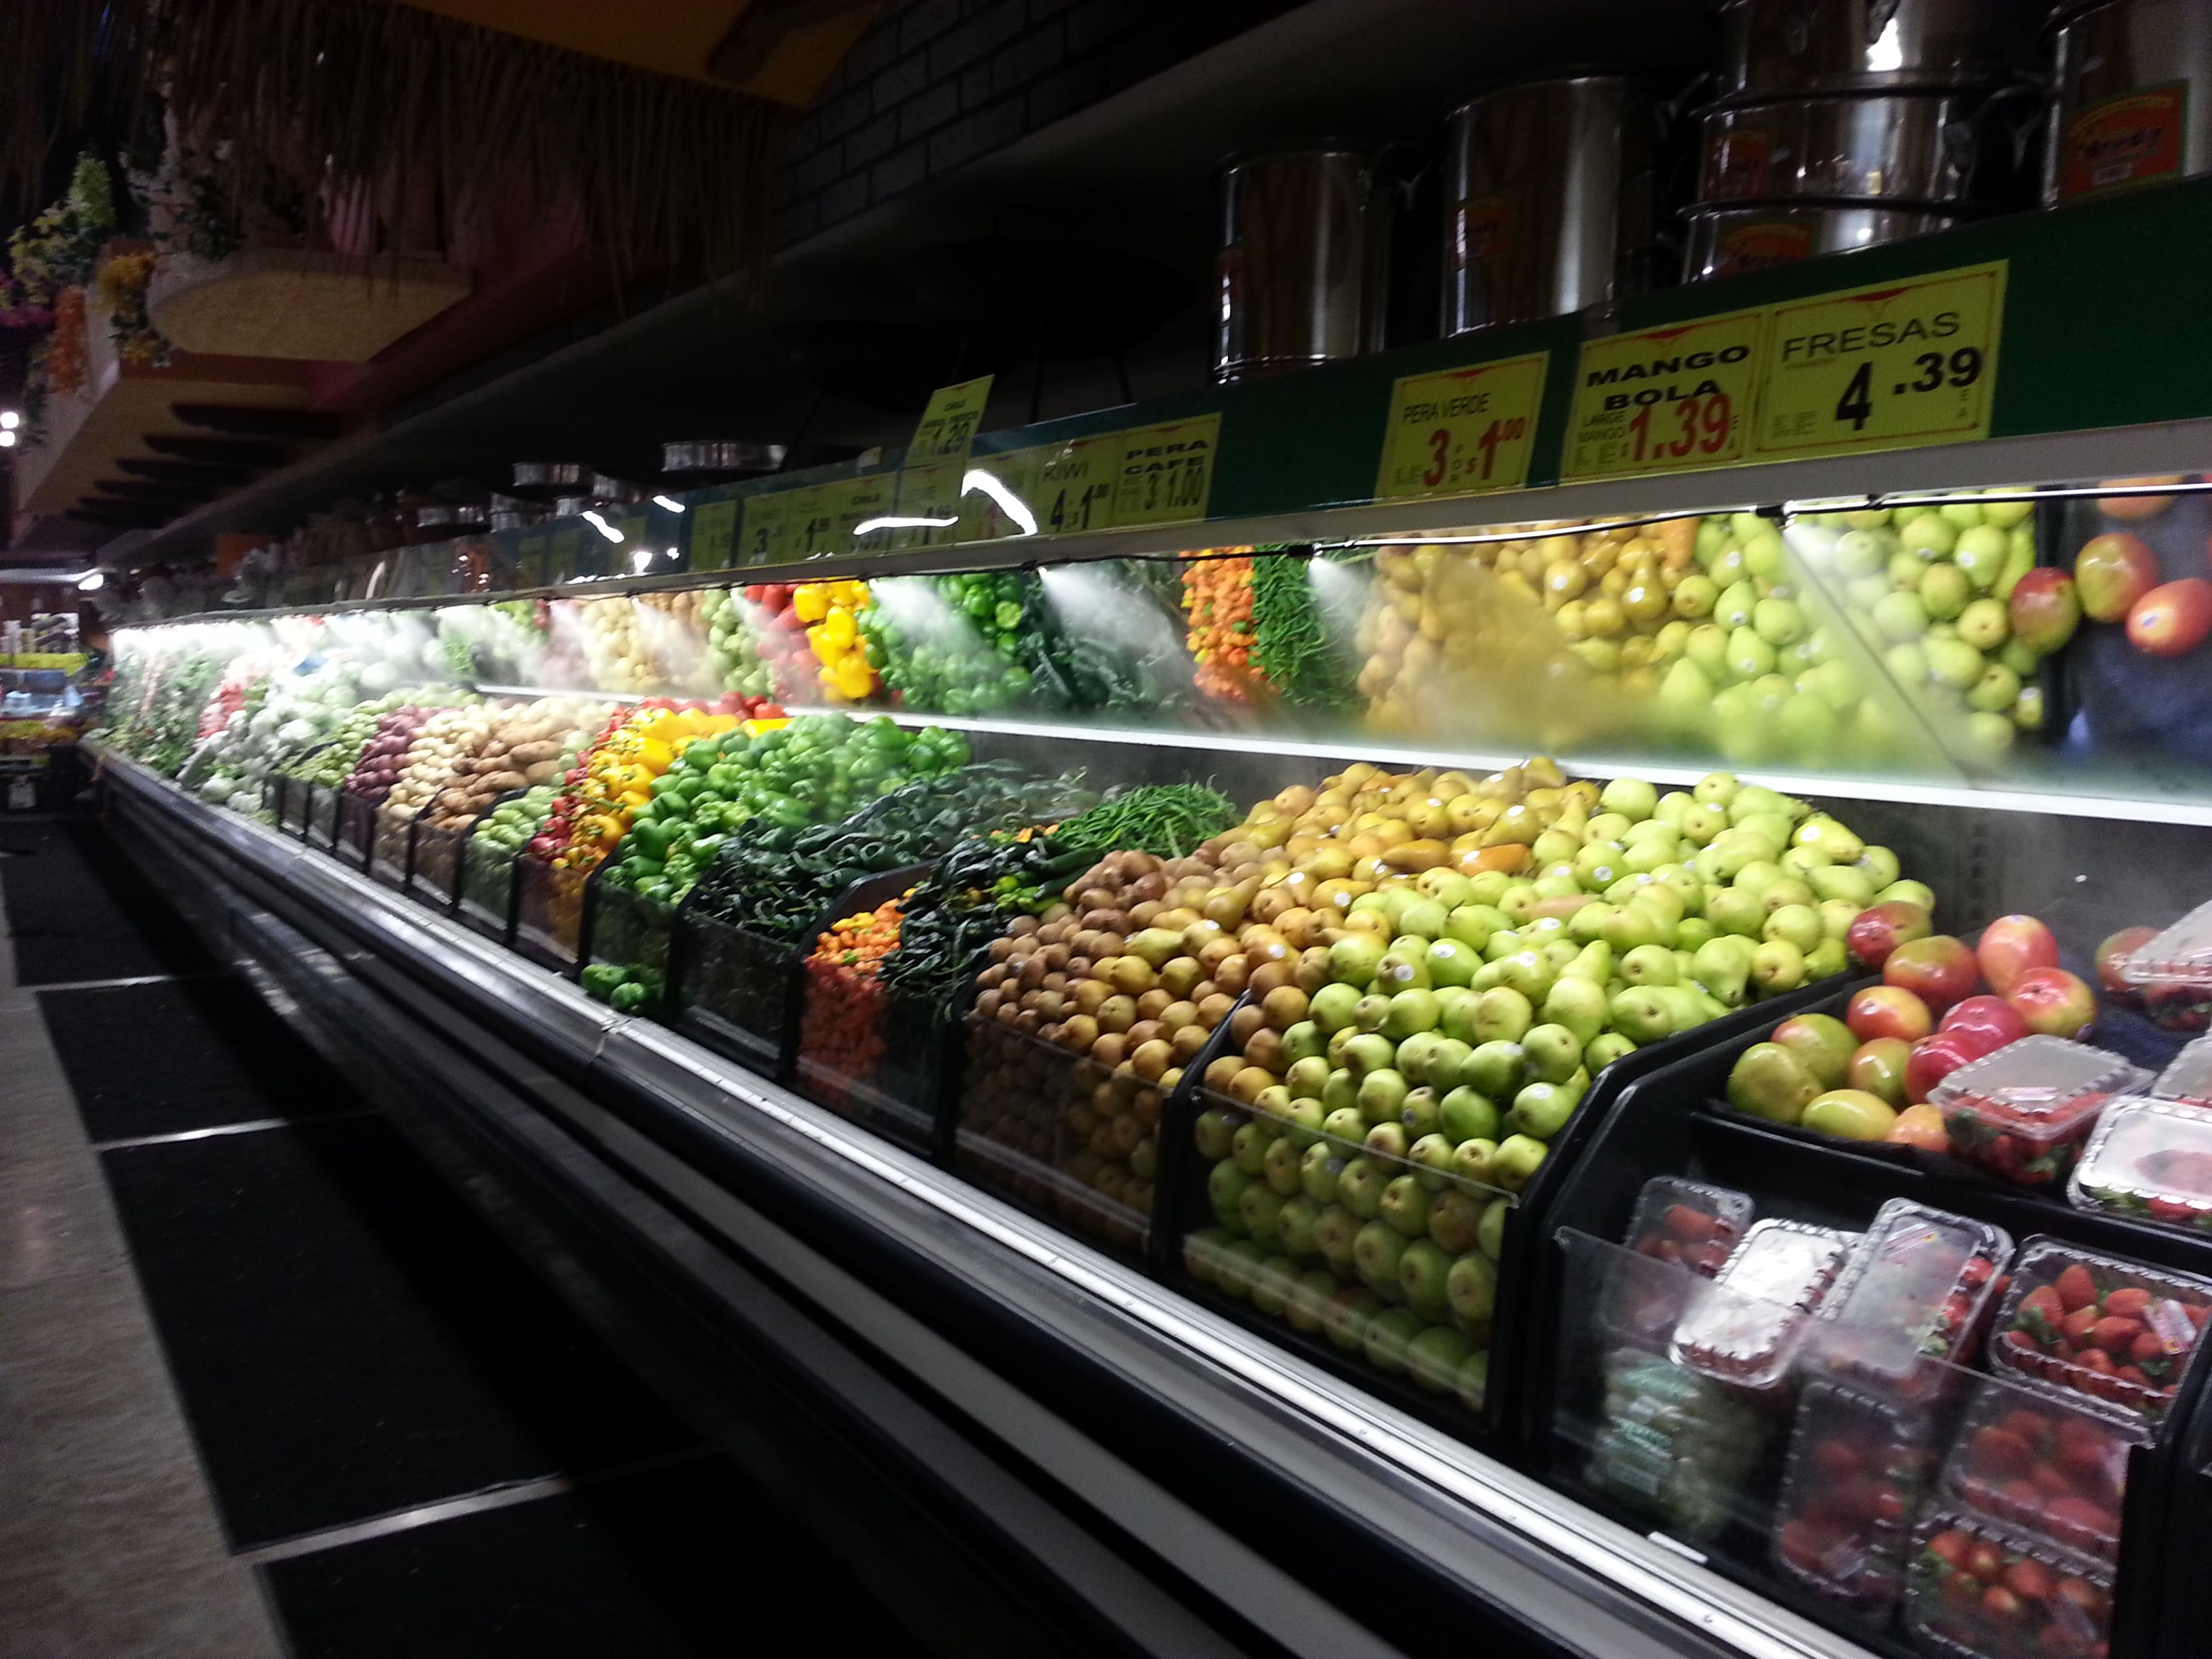 Fruits and vegetables humidification misting system